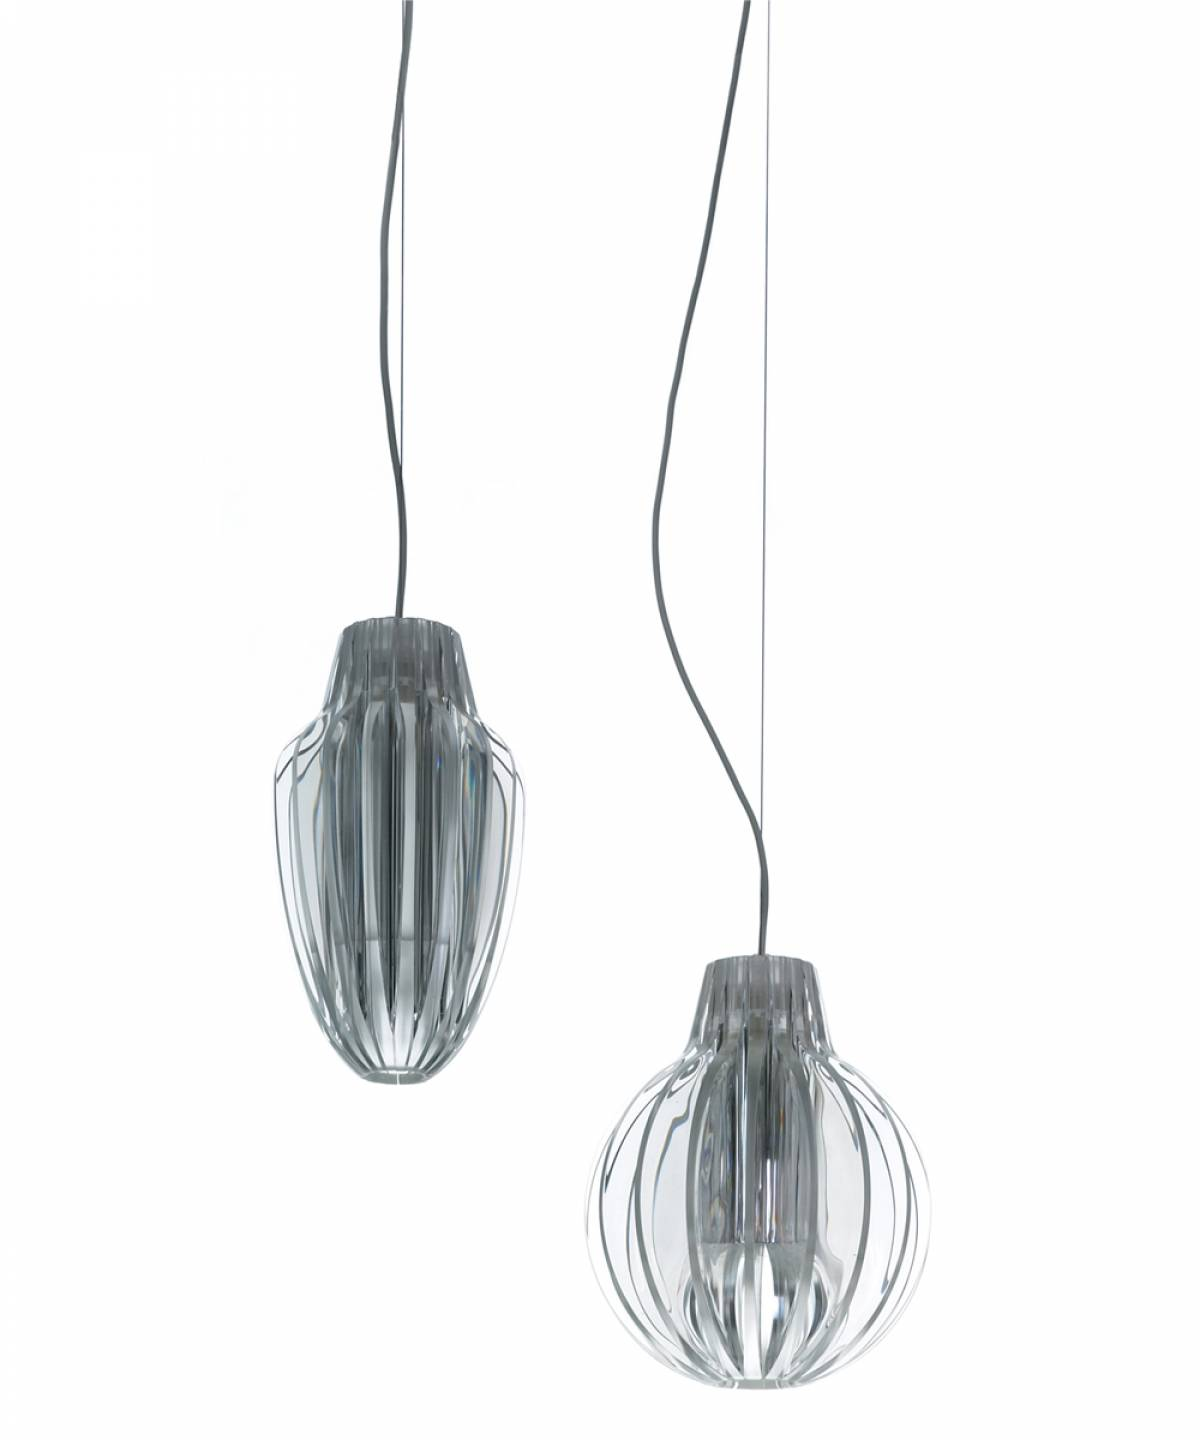 4 Agave suspension lamp Luceplan